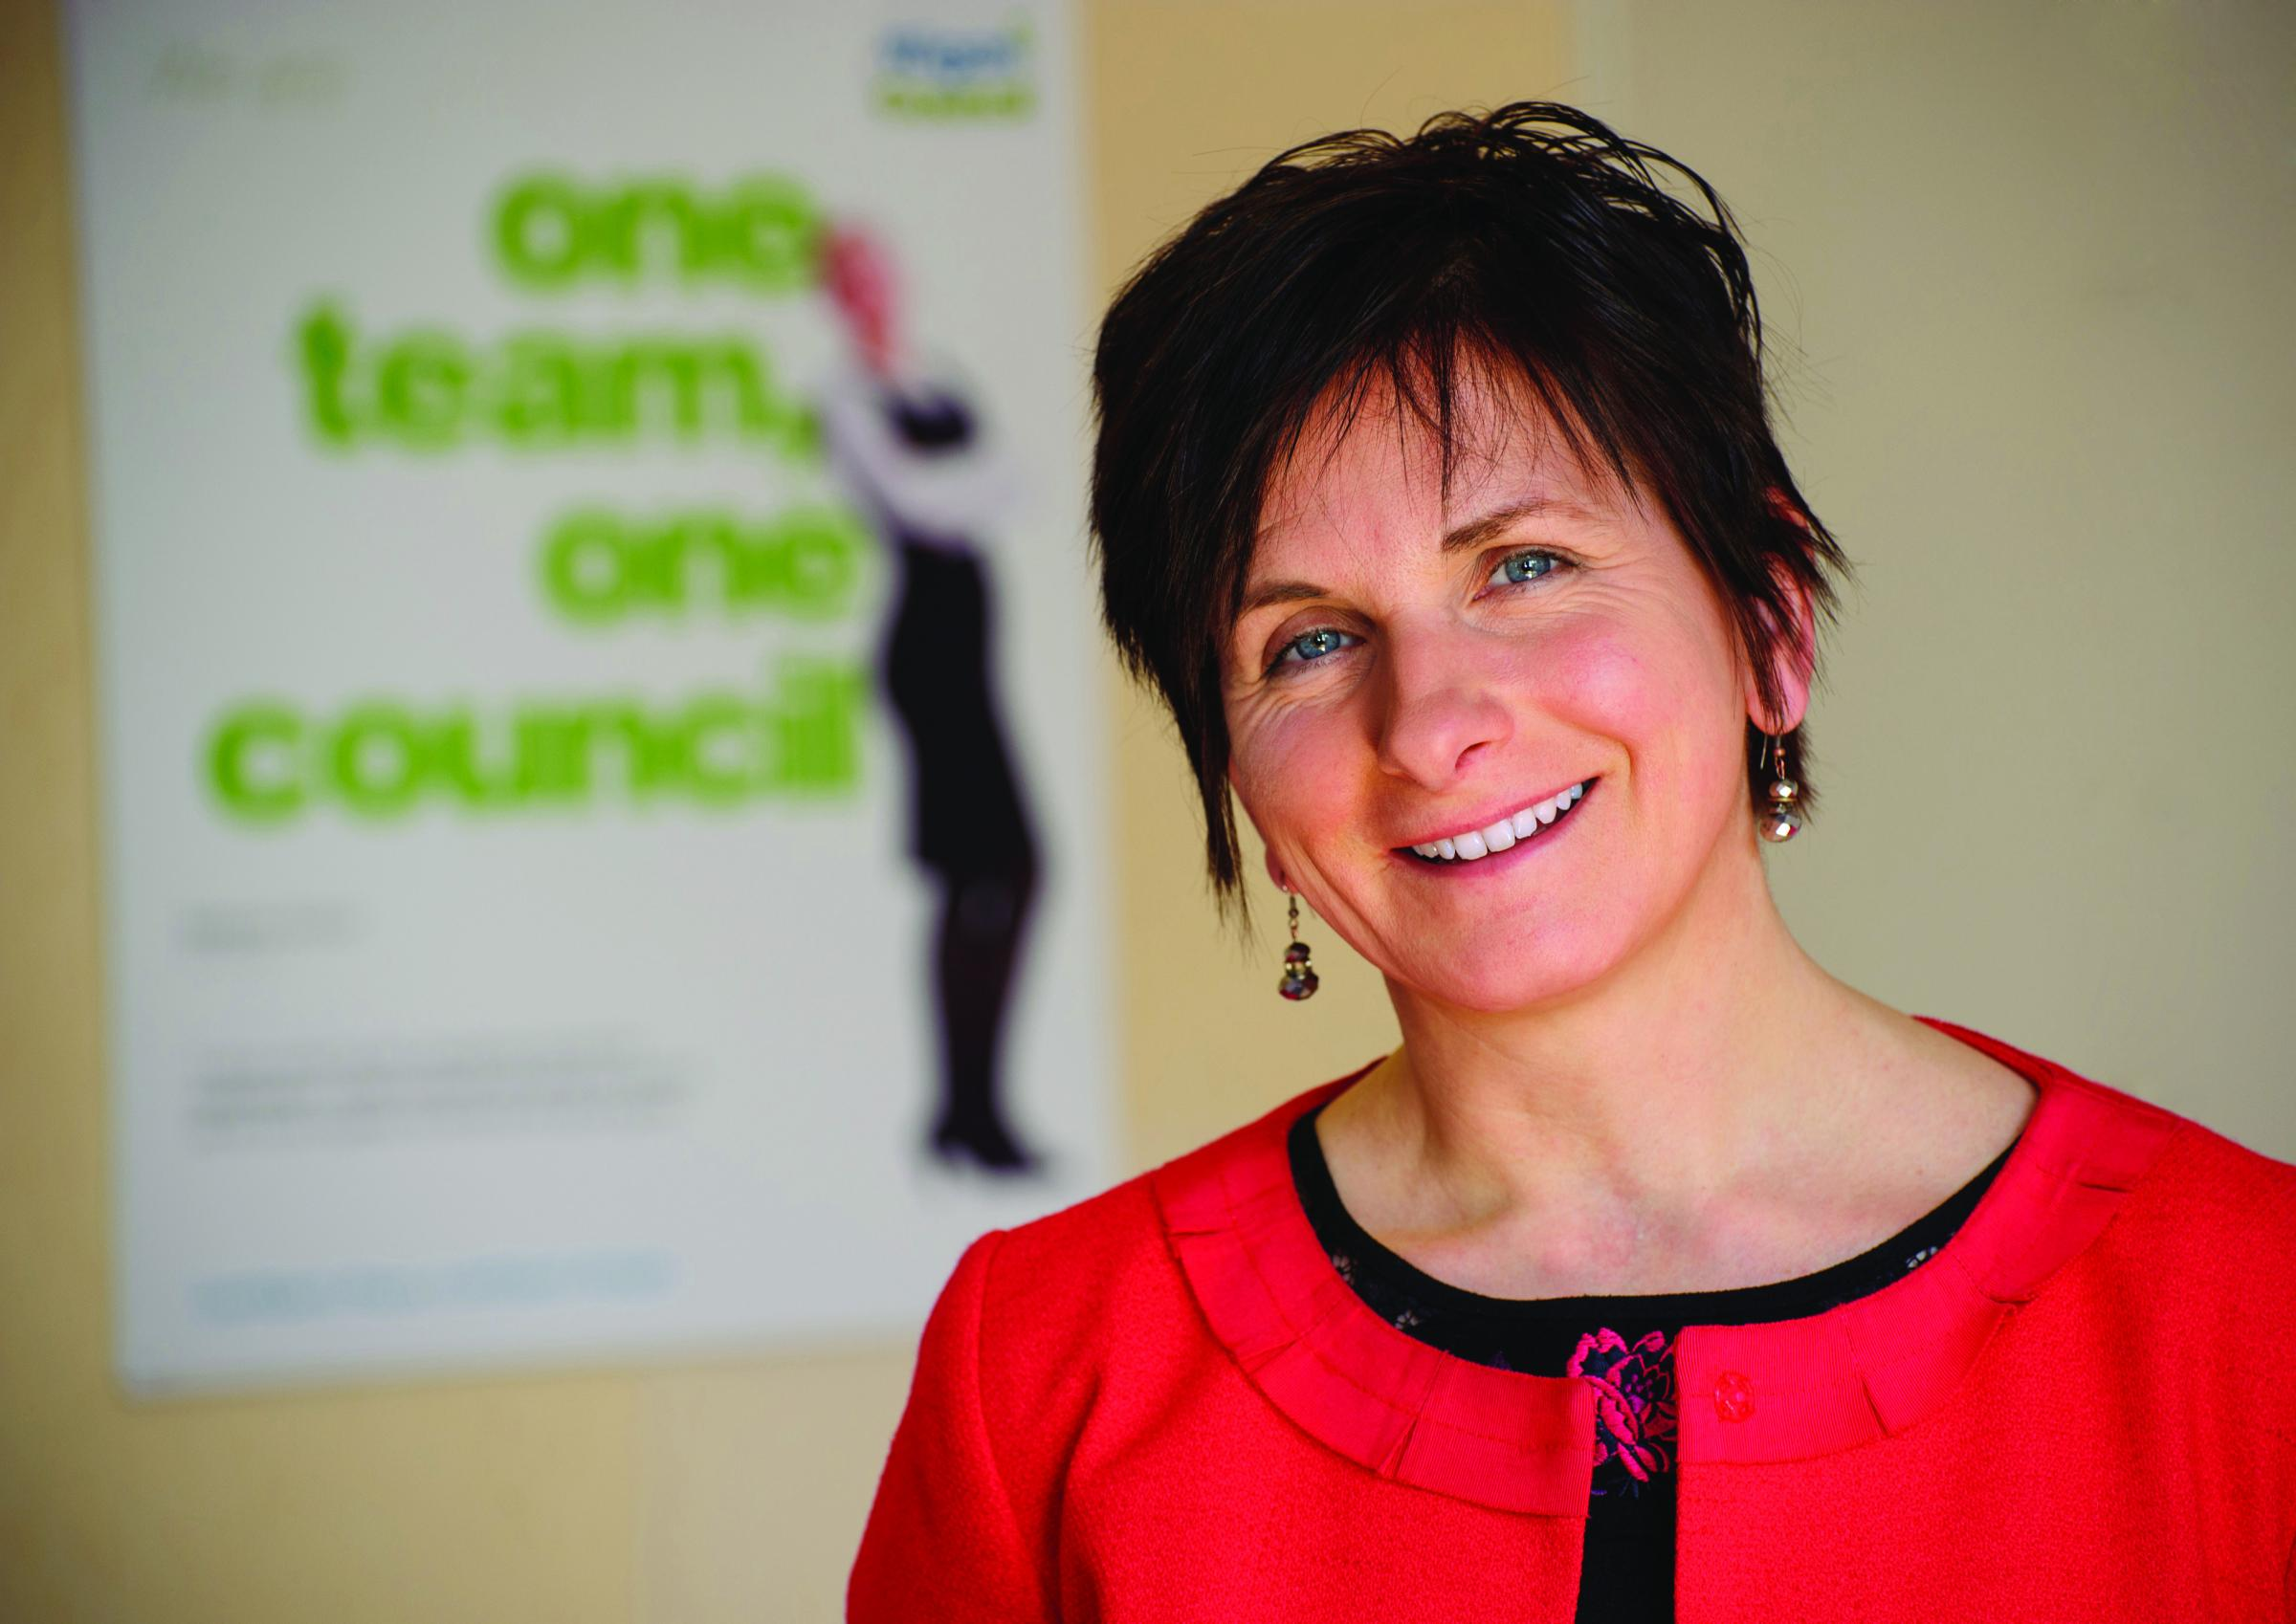 Wigan Council chief executive Donna Hall